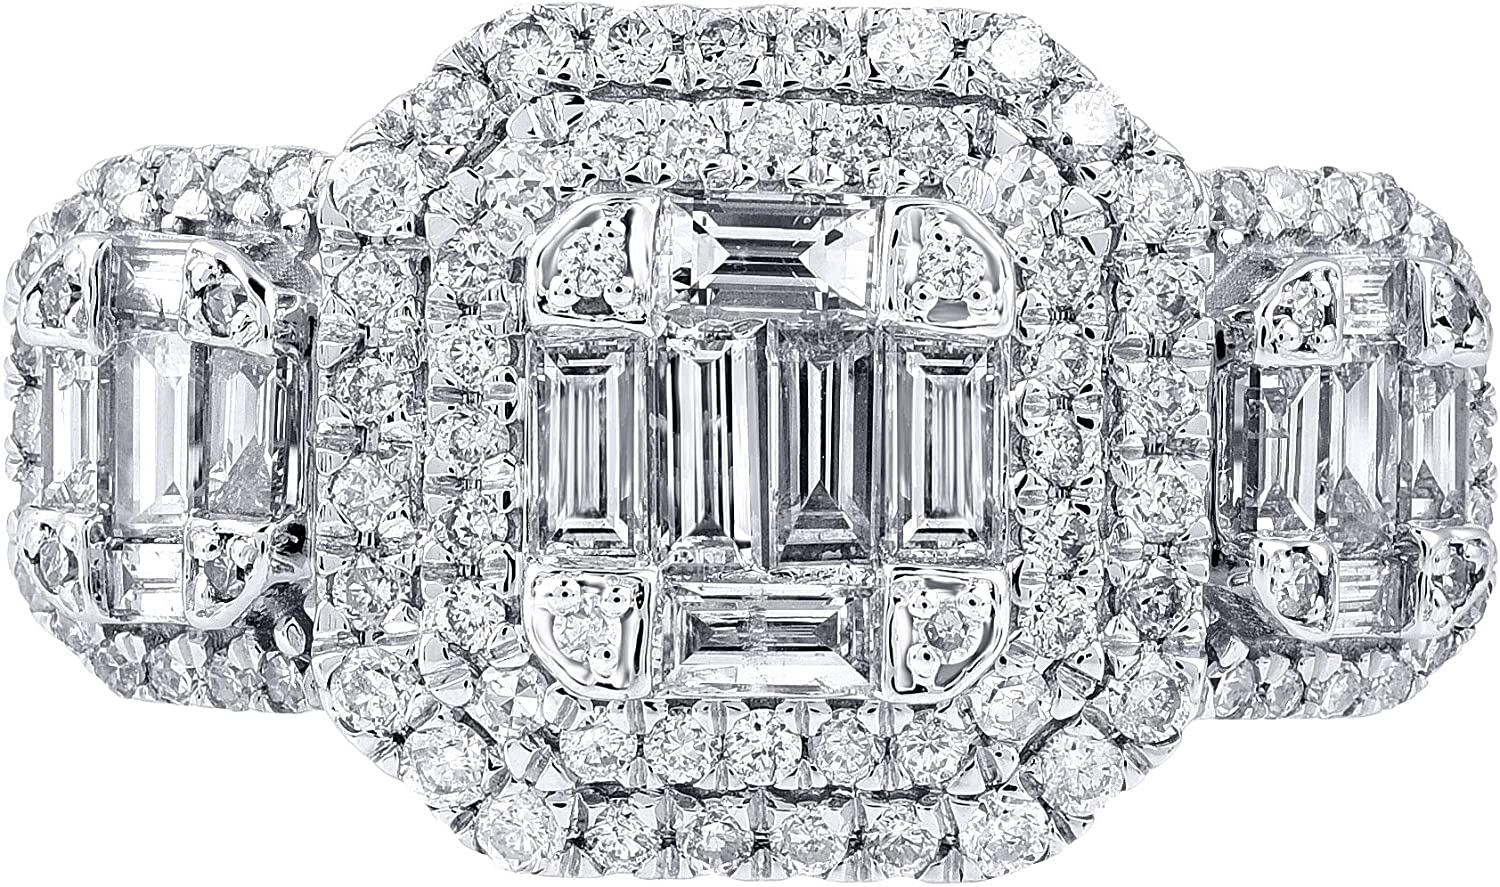 TJD 14K Gold 1.00 Carat Natural Diamond Ring (H-I Color, I2-I3 Clarity) Diamond Ring for Women Diamond Jewelry Gifts for Women